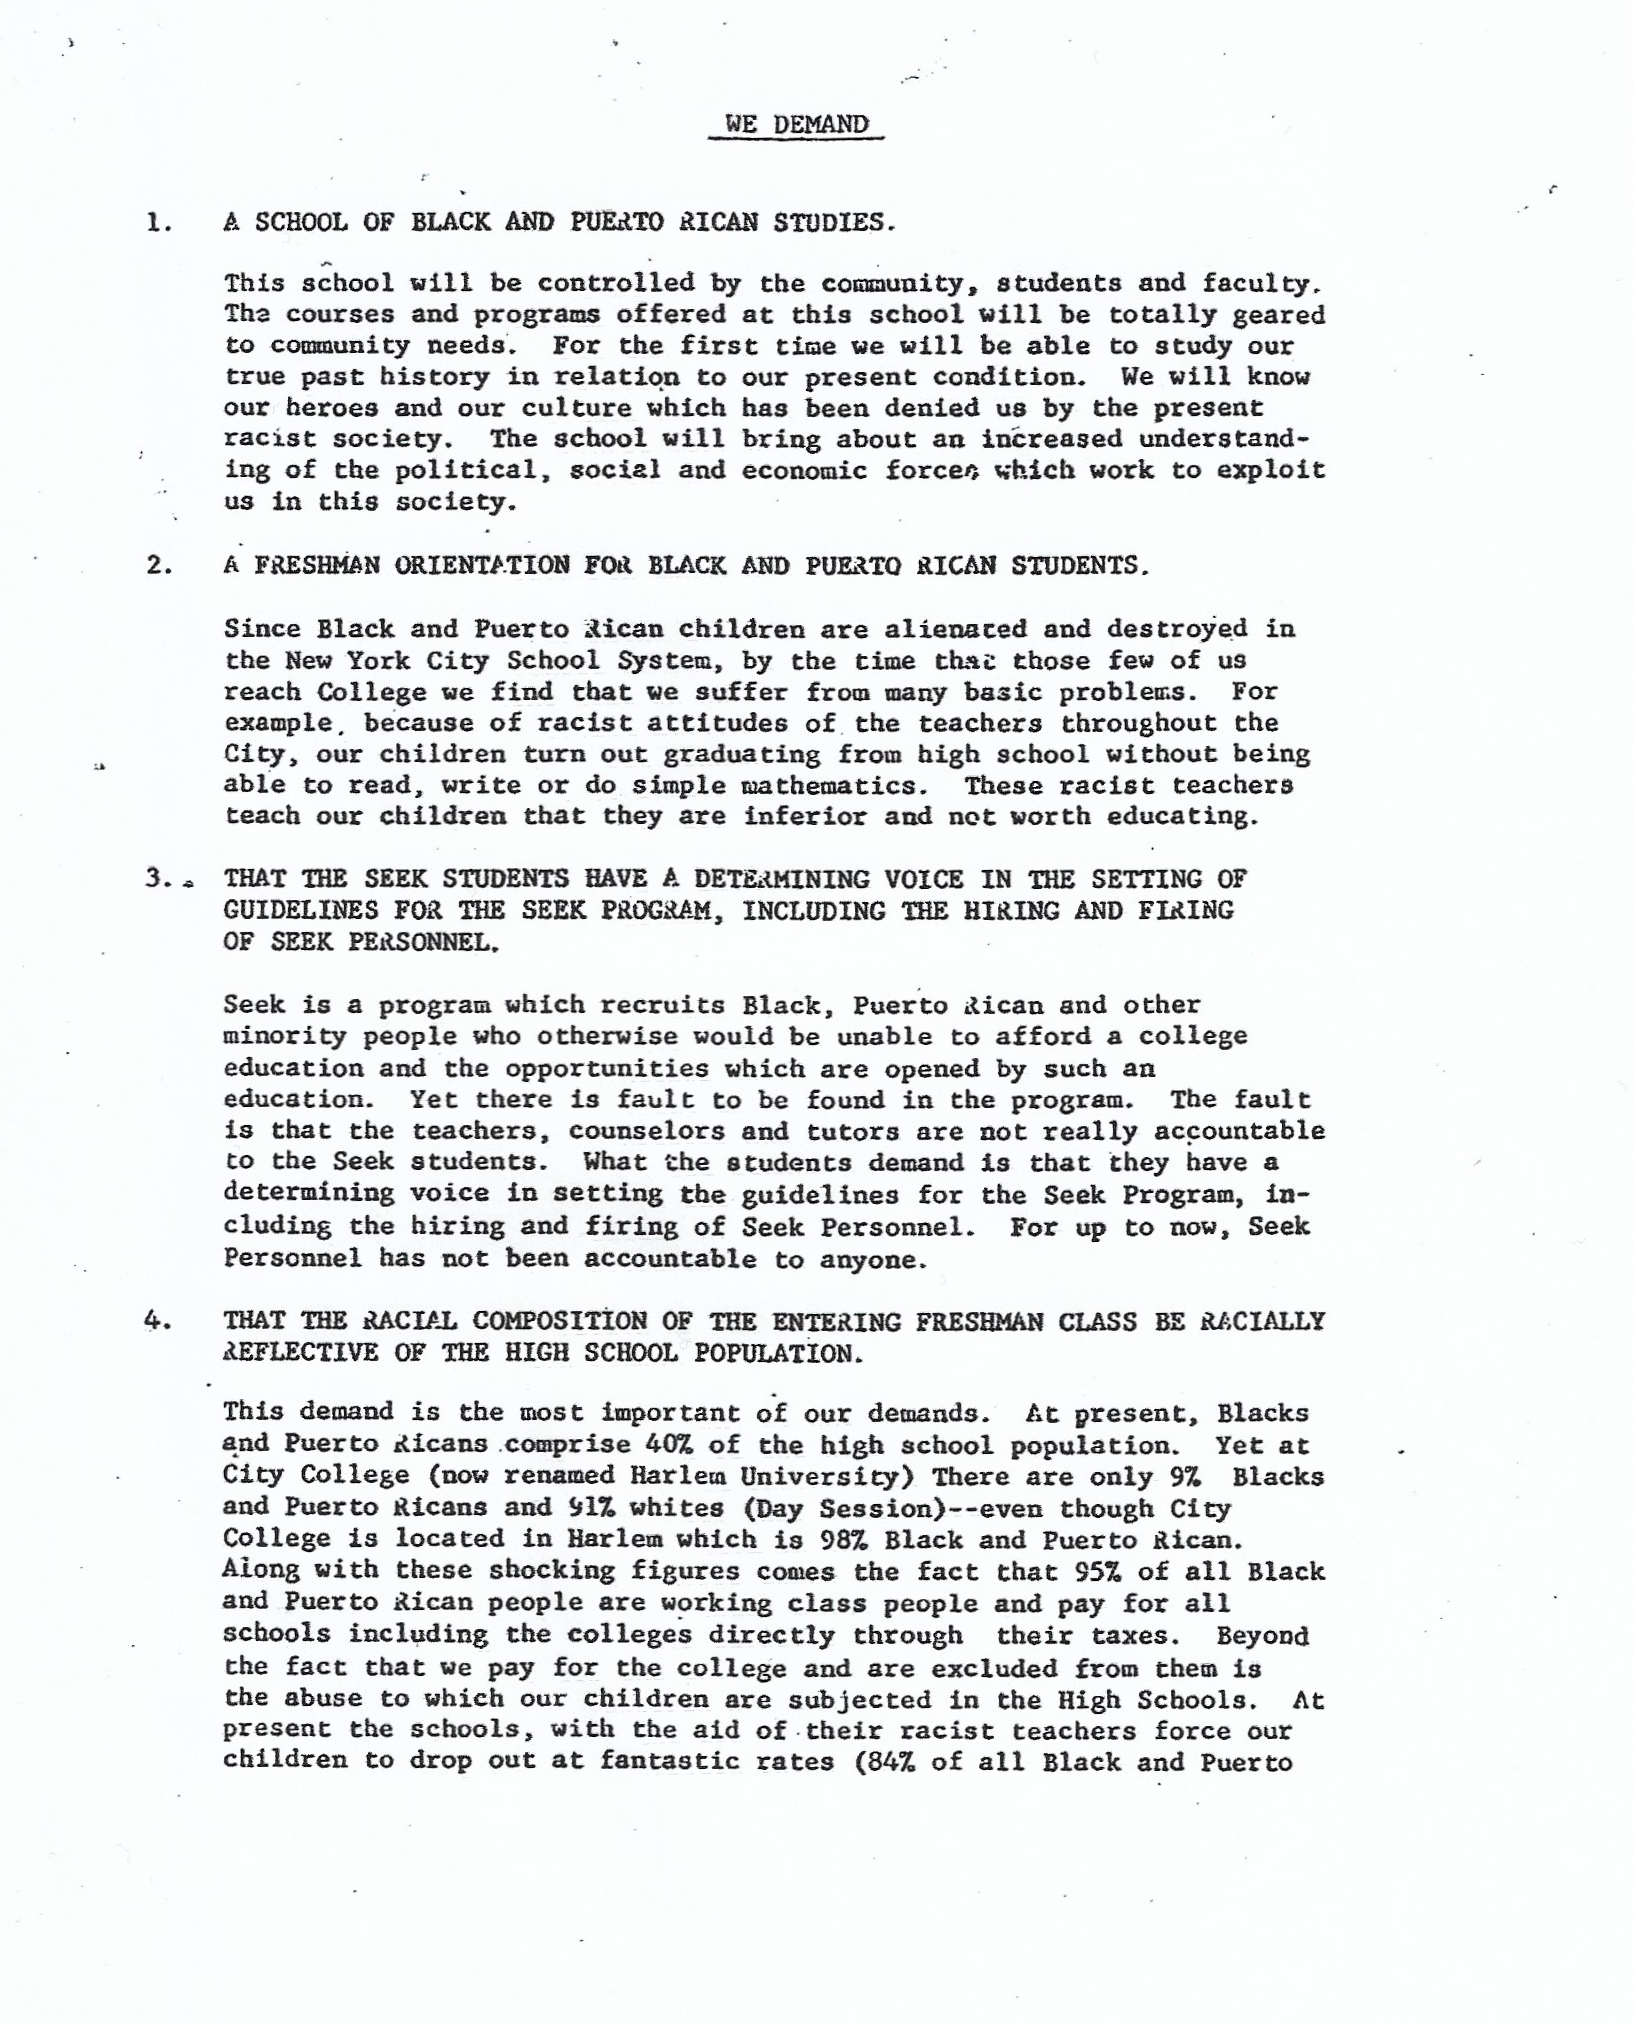 Typewritten list of demands and justifications. Demand 1: A School of Black and Puerto Rican Studies. Demand 2: A Freshman Orientation for Black and Puerto Rican Students. Demand 3: That the SEEK Students have a Determining Voice in the Setting of Guidelines for the SEEK Program, Including the Hiring and Firing of SEEK Personnel. Demand 4: That the Racial Composition of the Entering Freshman Class be Racially Reflective of the High School Population.